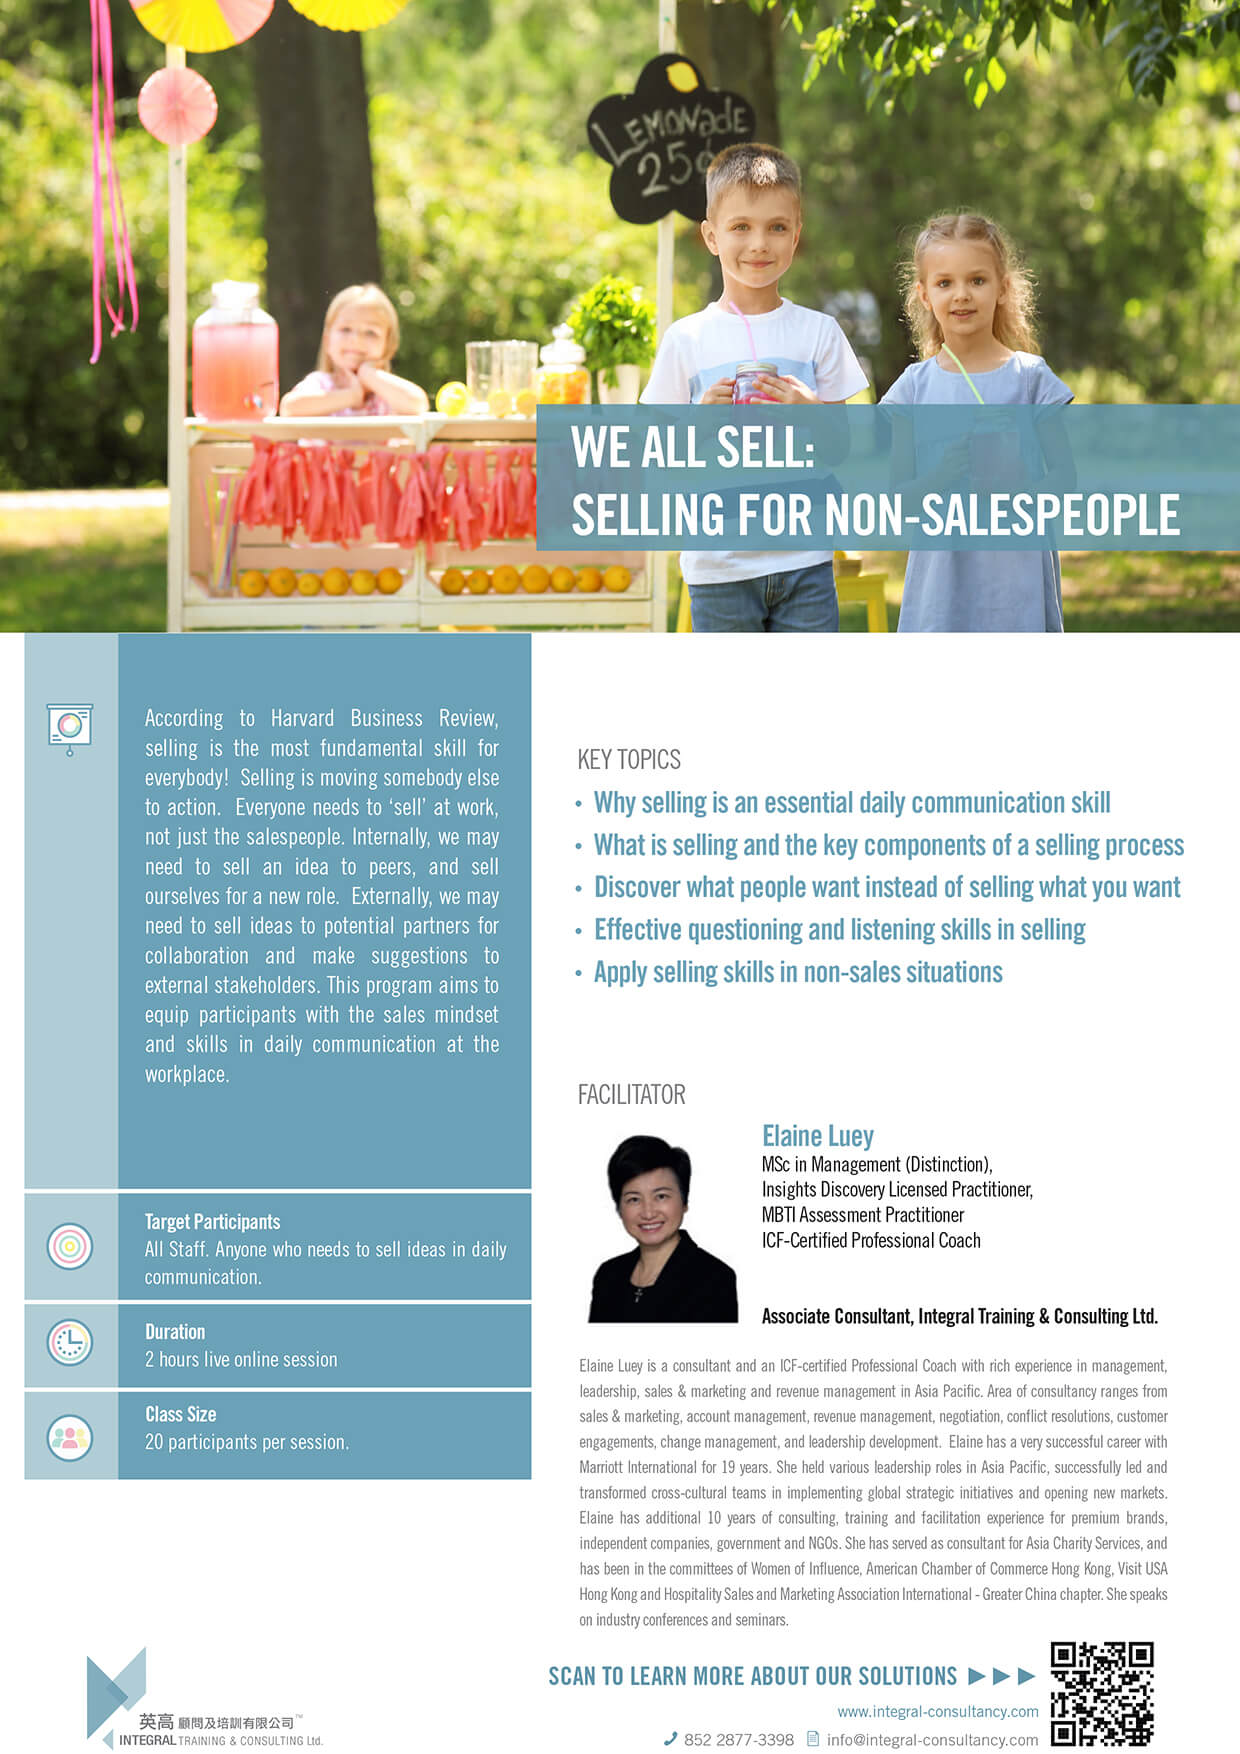 We All Sell: Selling for Non-salespeople